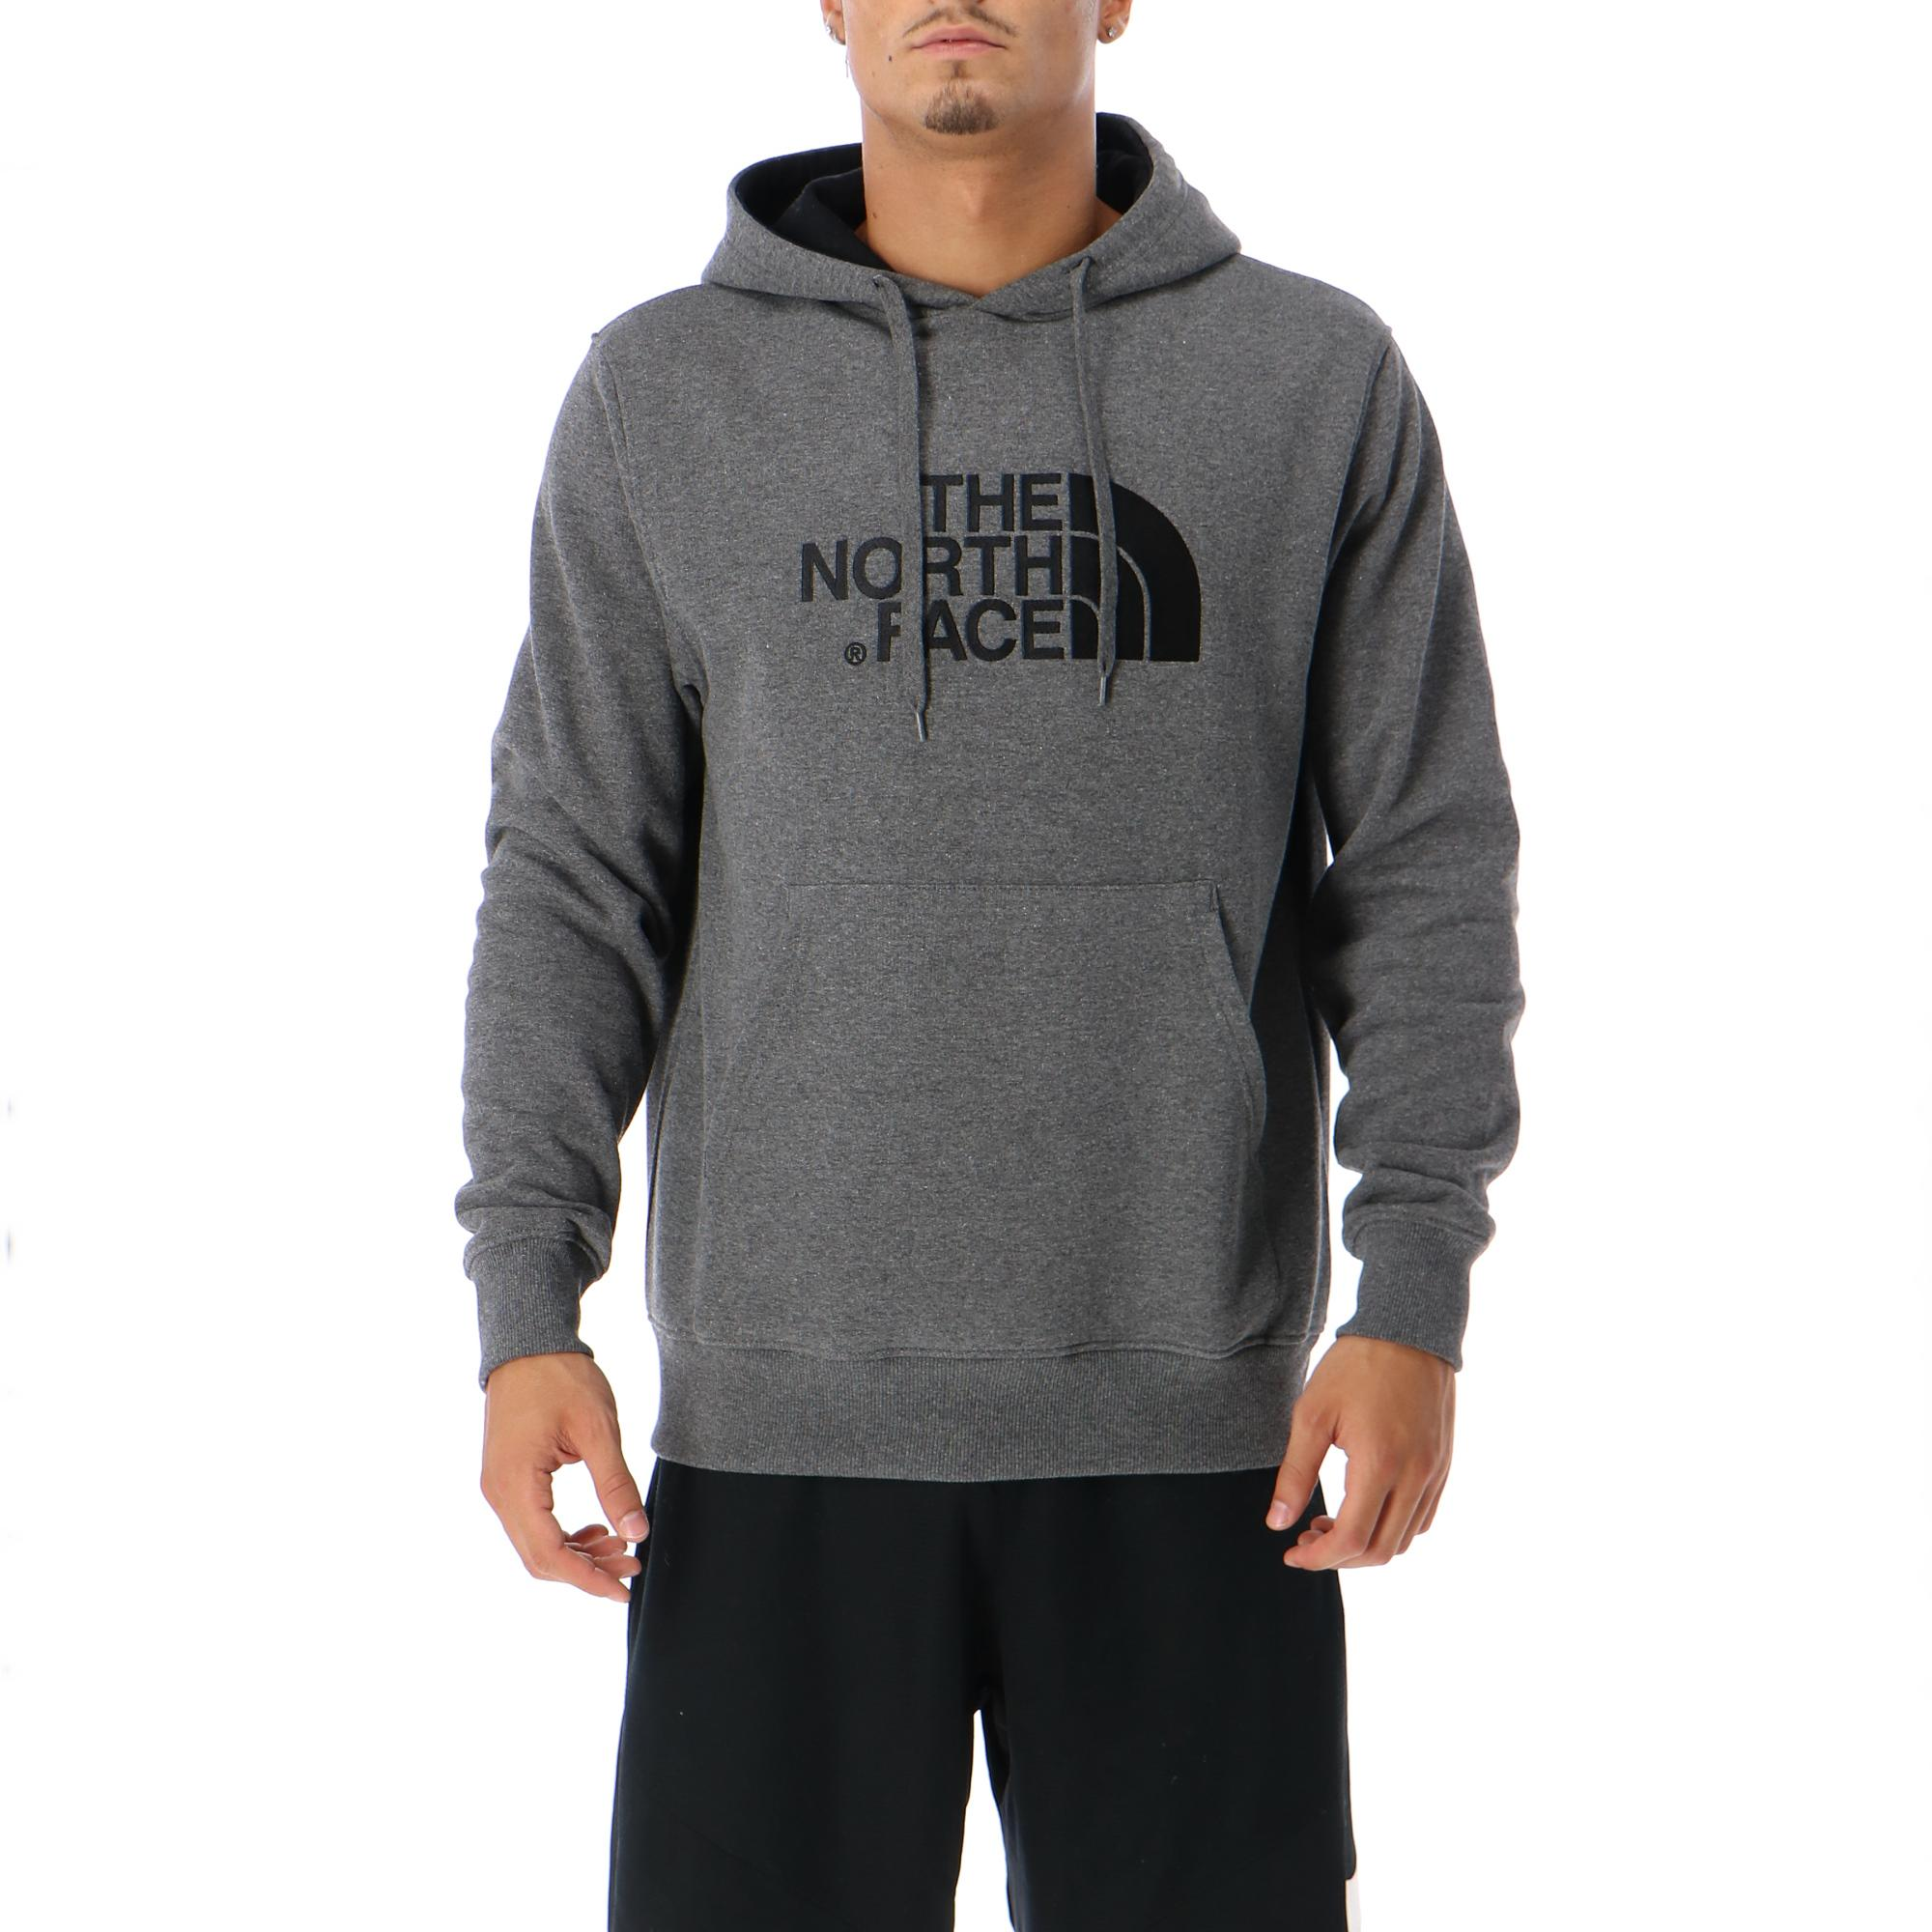 8f5a97b4b THE NORTH FACE DREW PEAK PULLOVER HOODIE